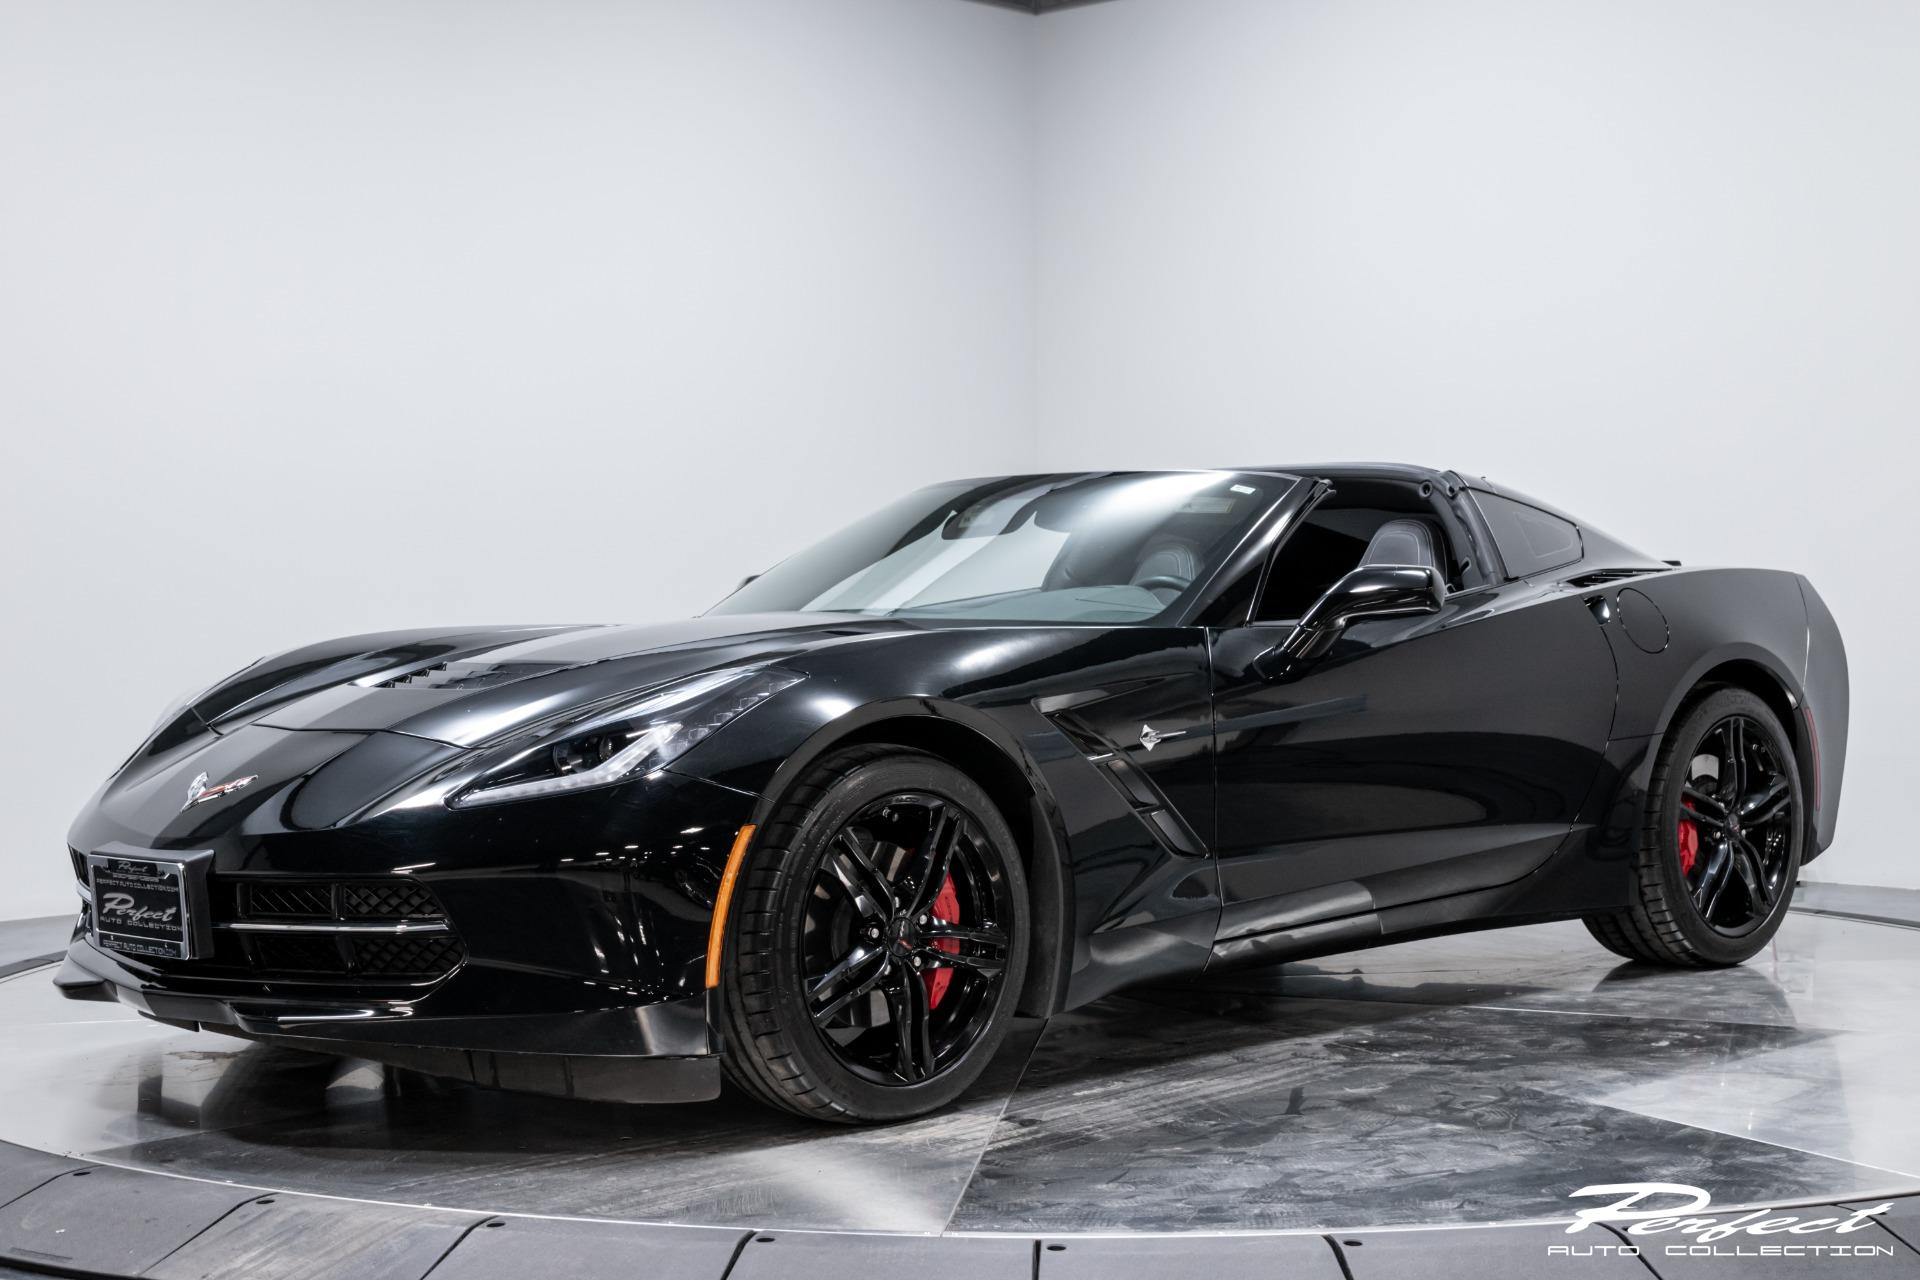 Used 2016 Chevrolet Corvette Stingray for sale Sold at Perfect Auto Collection in Akron OH 44310 1